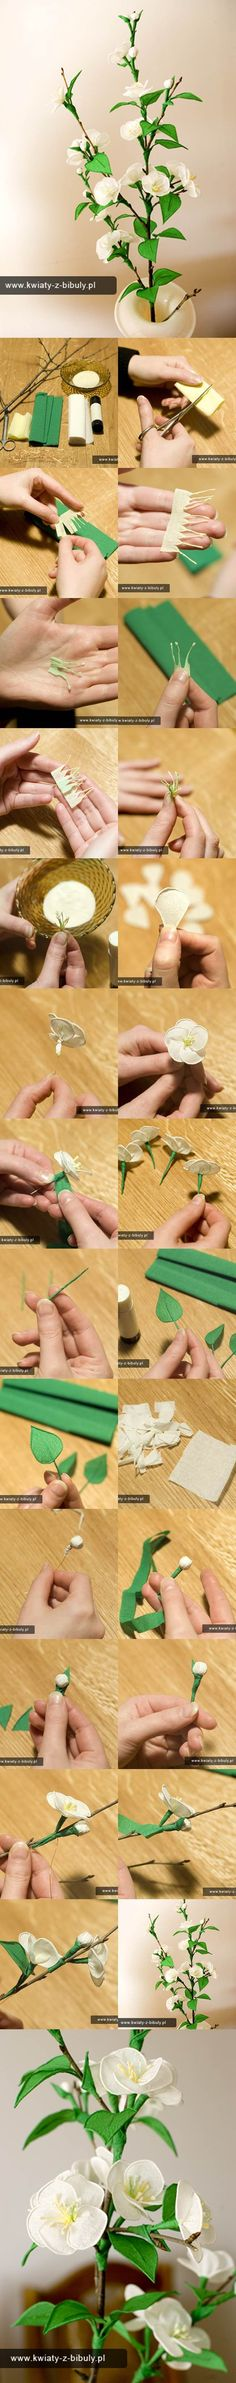 DIY Delicate Crepe Paper Cherry Blossom Sprig | iCreativeIdeas.com LIKE Us on Facebook ==> https://www.facebook.com/icreativeideas